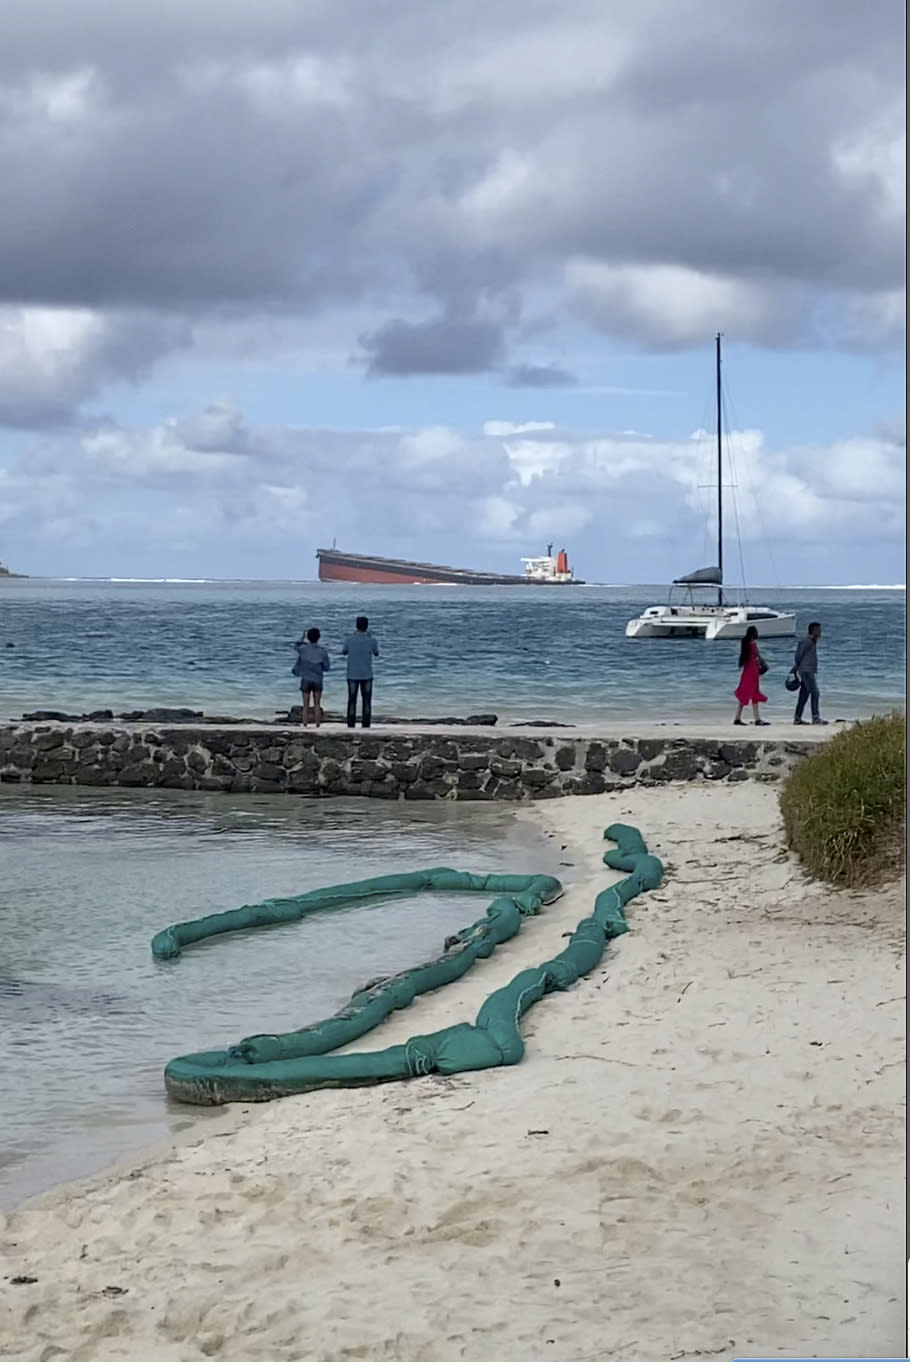 """In this still image taken from video provided by Grégoire Rouxel, people watch a ship that ran aground offshore that is leaking fuel, Friday, Aug. 7, 2020, in Mauritius. The Indian Ocean island of Mauritius has declared a """"state of environmental emergency"""" after a Japanese-owned ship that ran aground offshore days ago began spilling tons of fuel. Prime Minister Pravind Jugnauth announced the development late Friday, as satellite images showed a dark slick spreading near environmental areas the government called """"very sensitive."""" (@gregrouxel via AP)"""